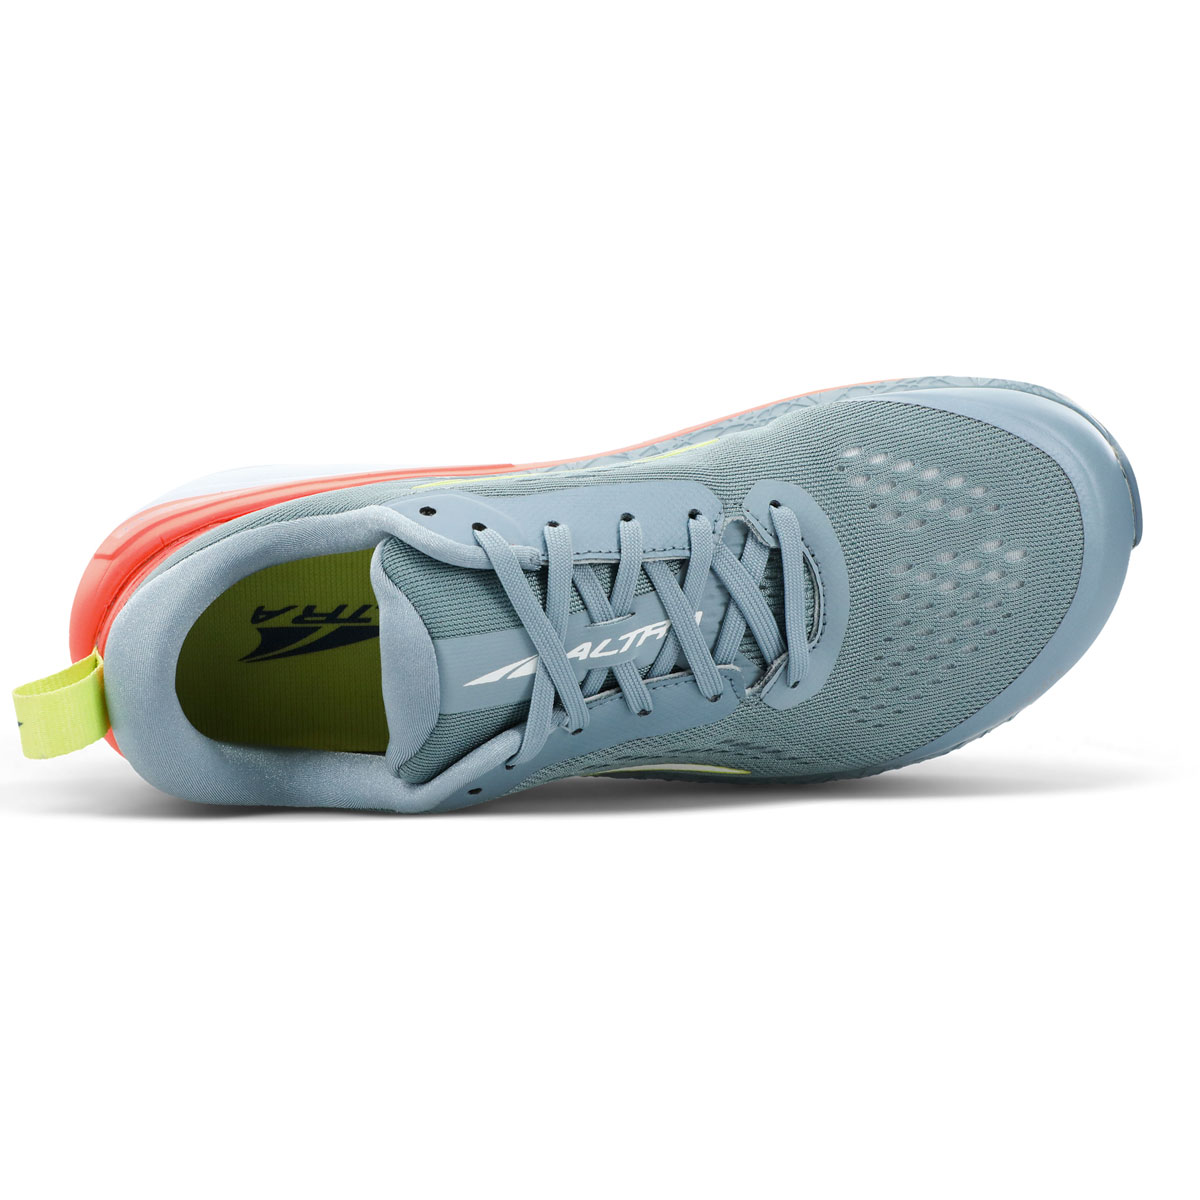 Women's Altra Paradigm 5 Running Shoe - Color: Gray/Coral - Size: 5.5 - Width: Regular, Gray/Coral, large, image 3